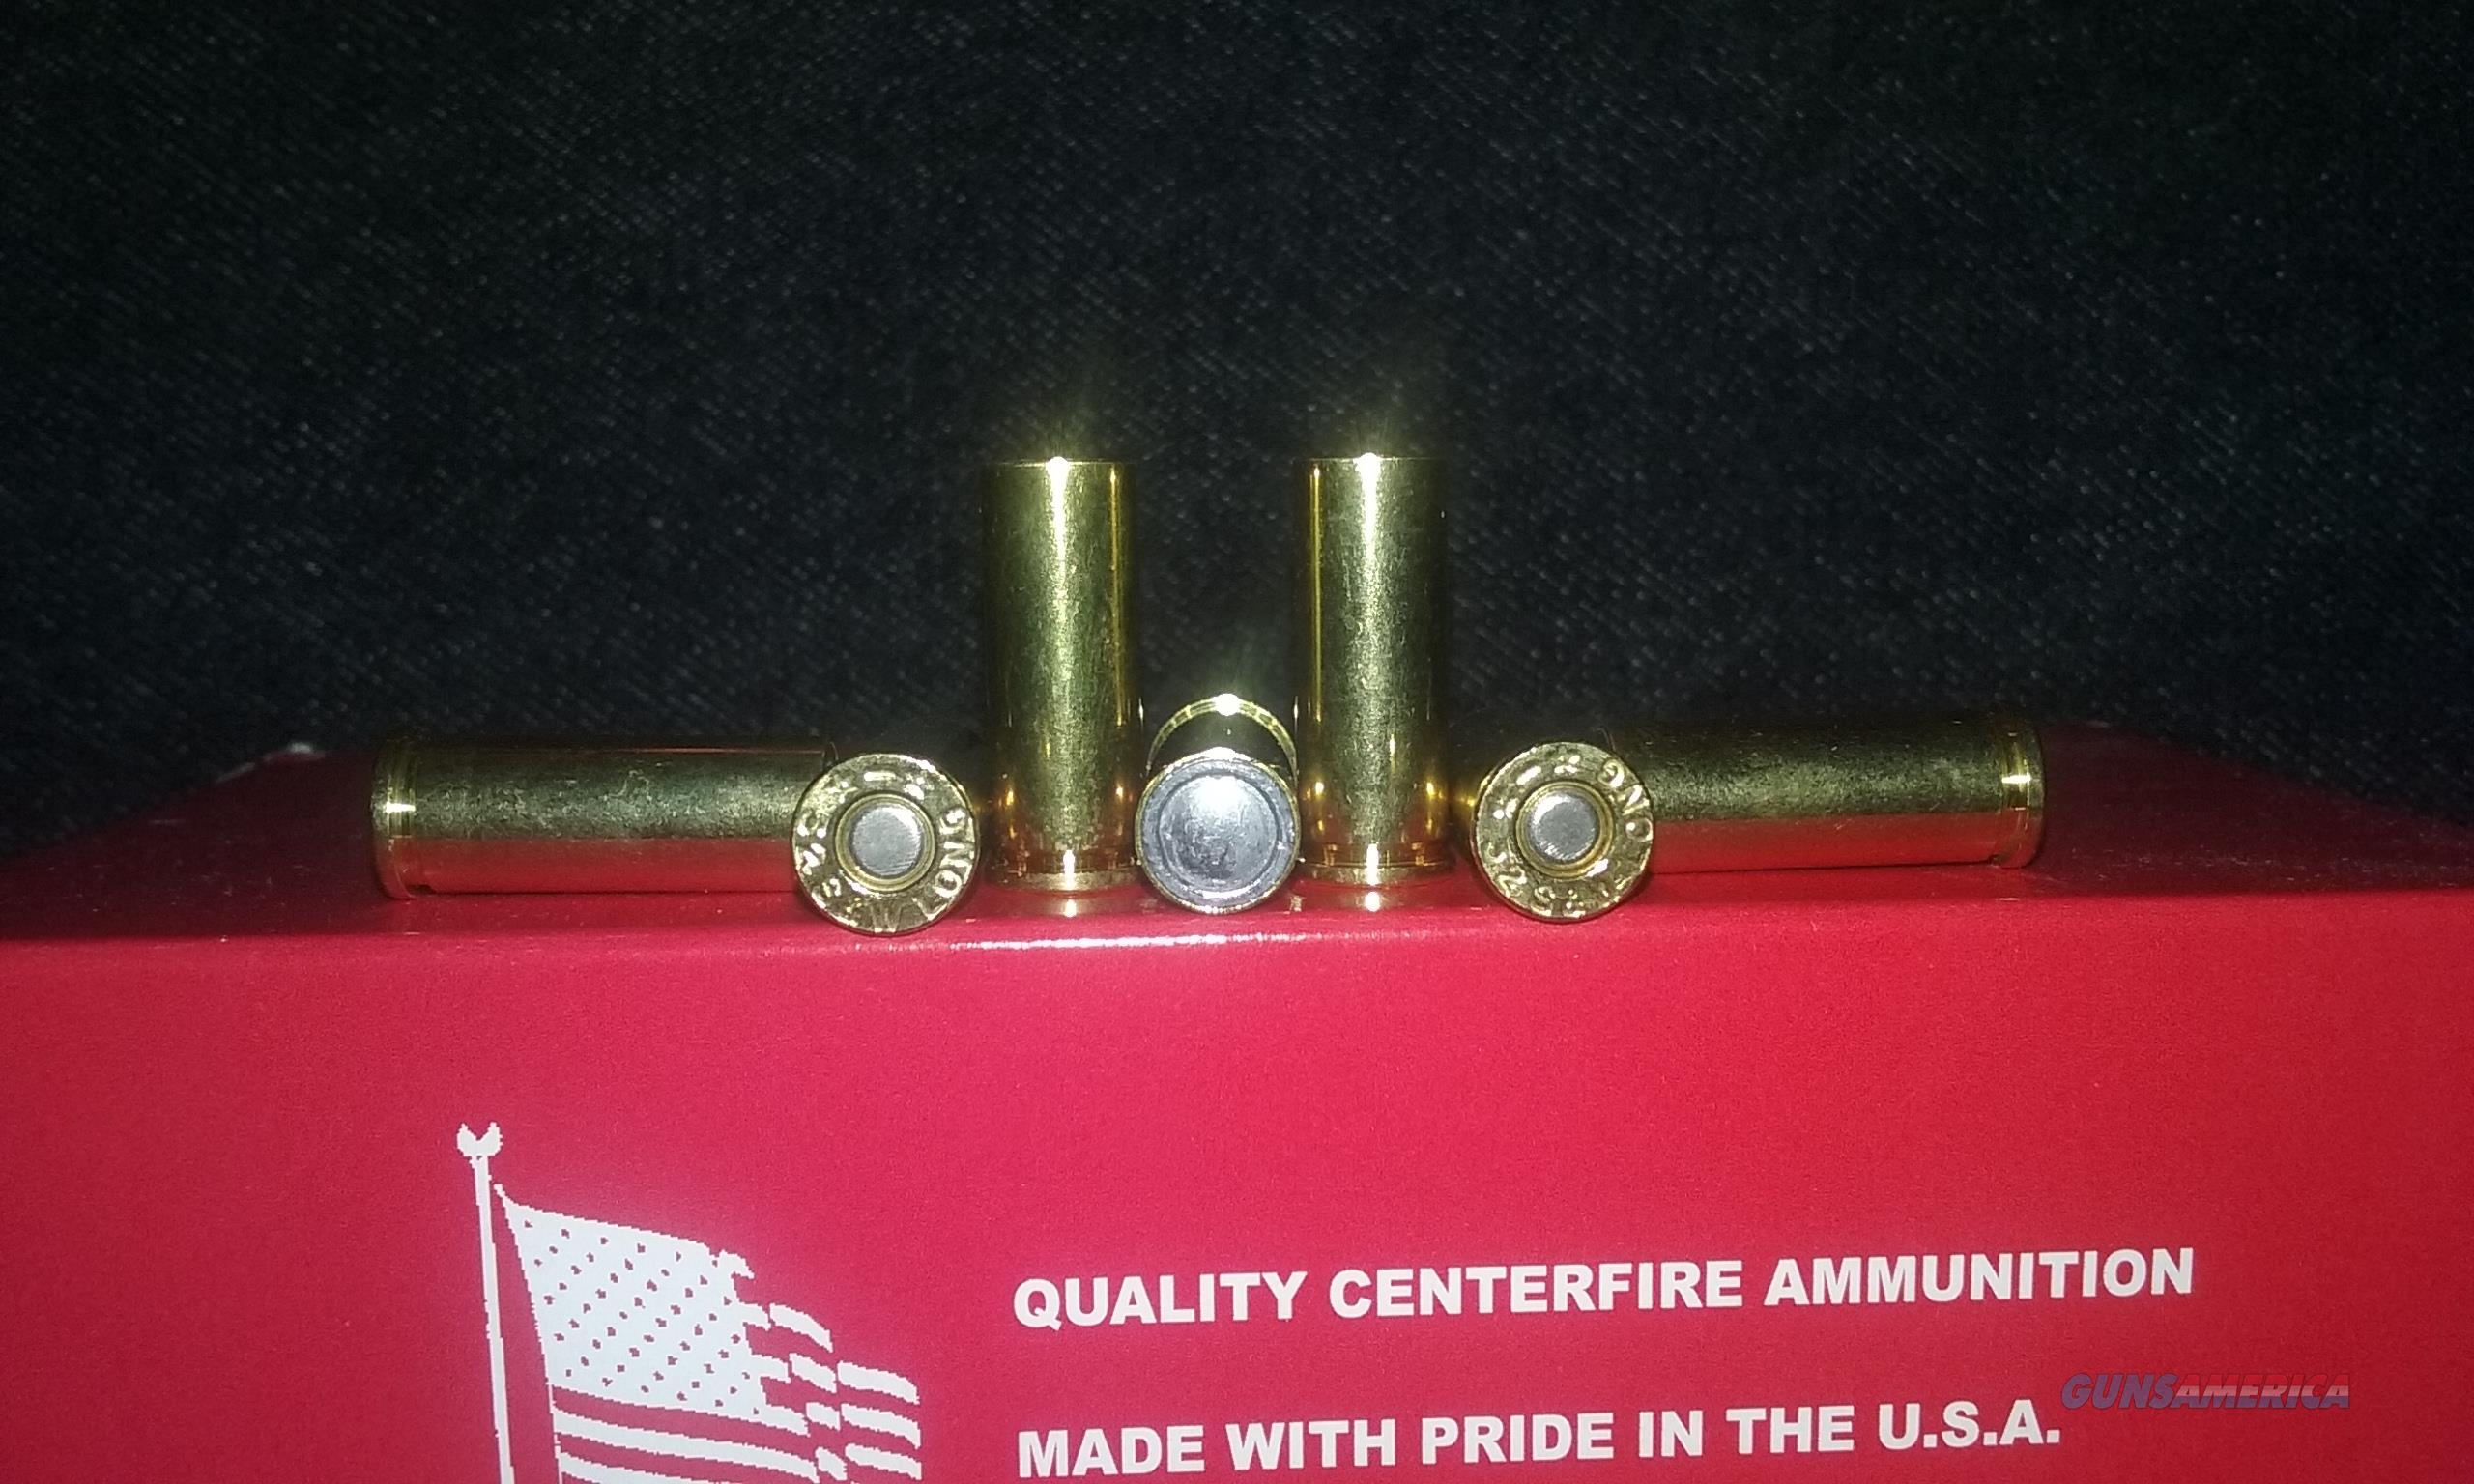 32 S&W Long / 32 New Colt Police Ammo.  Non-Guns > Ammunition